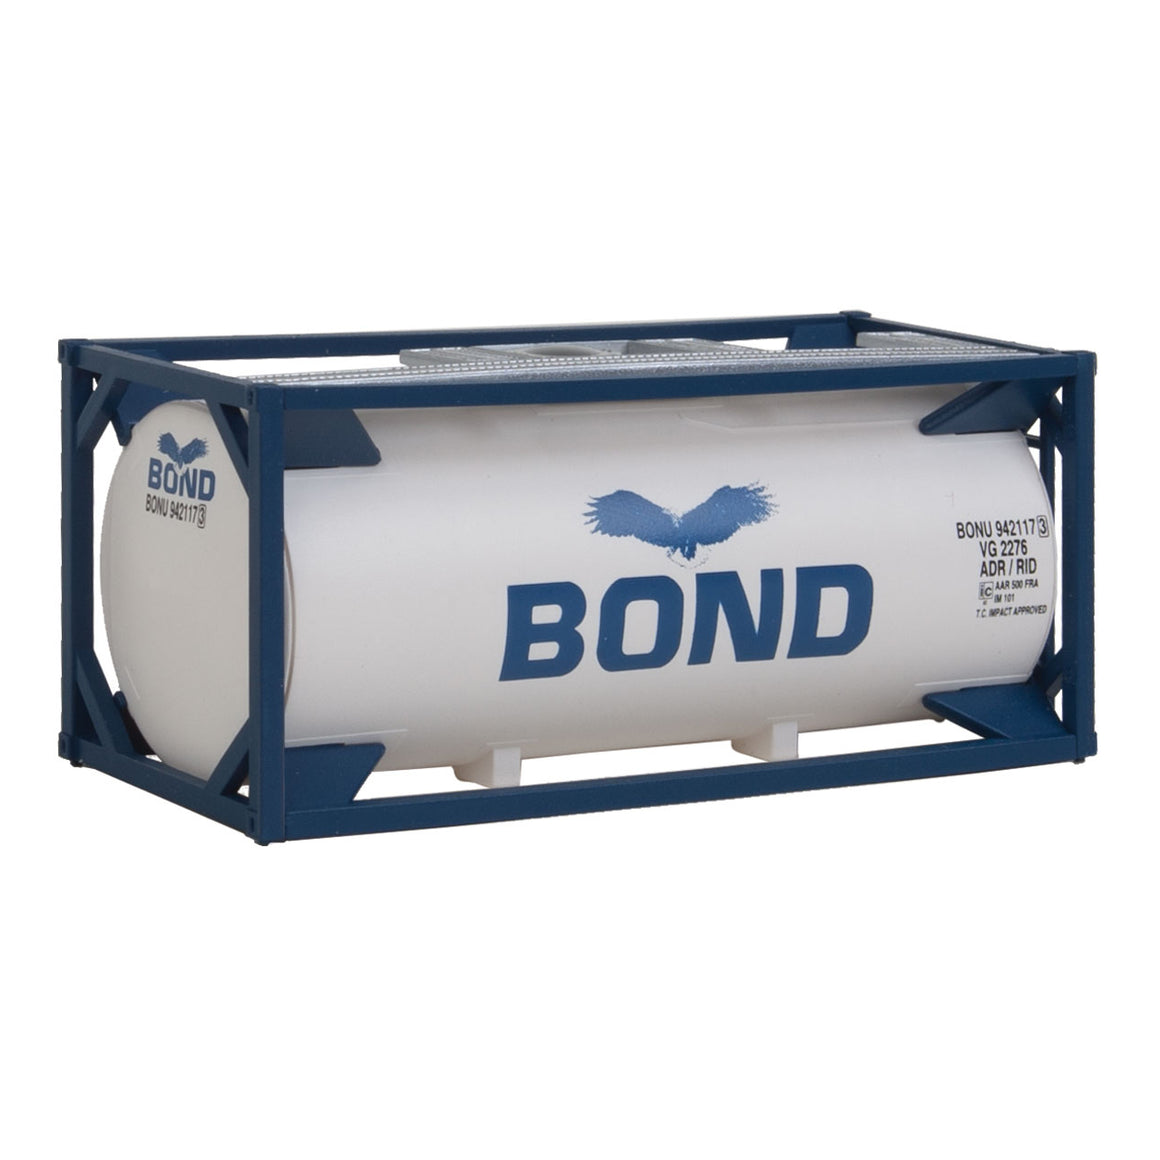 HO Scale: 20' Tank Container - Bond - Kit